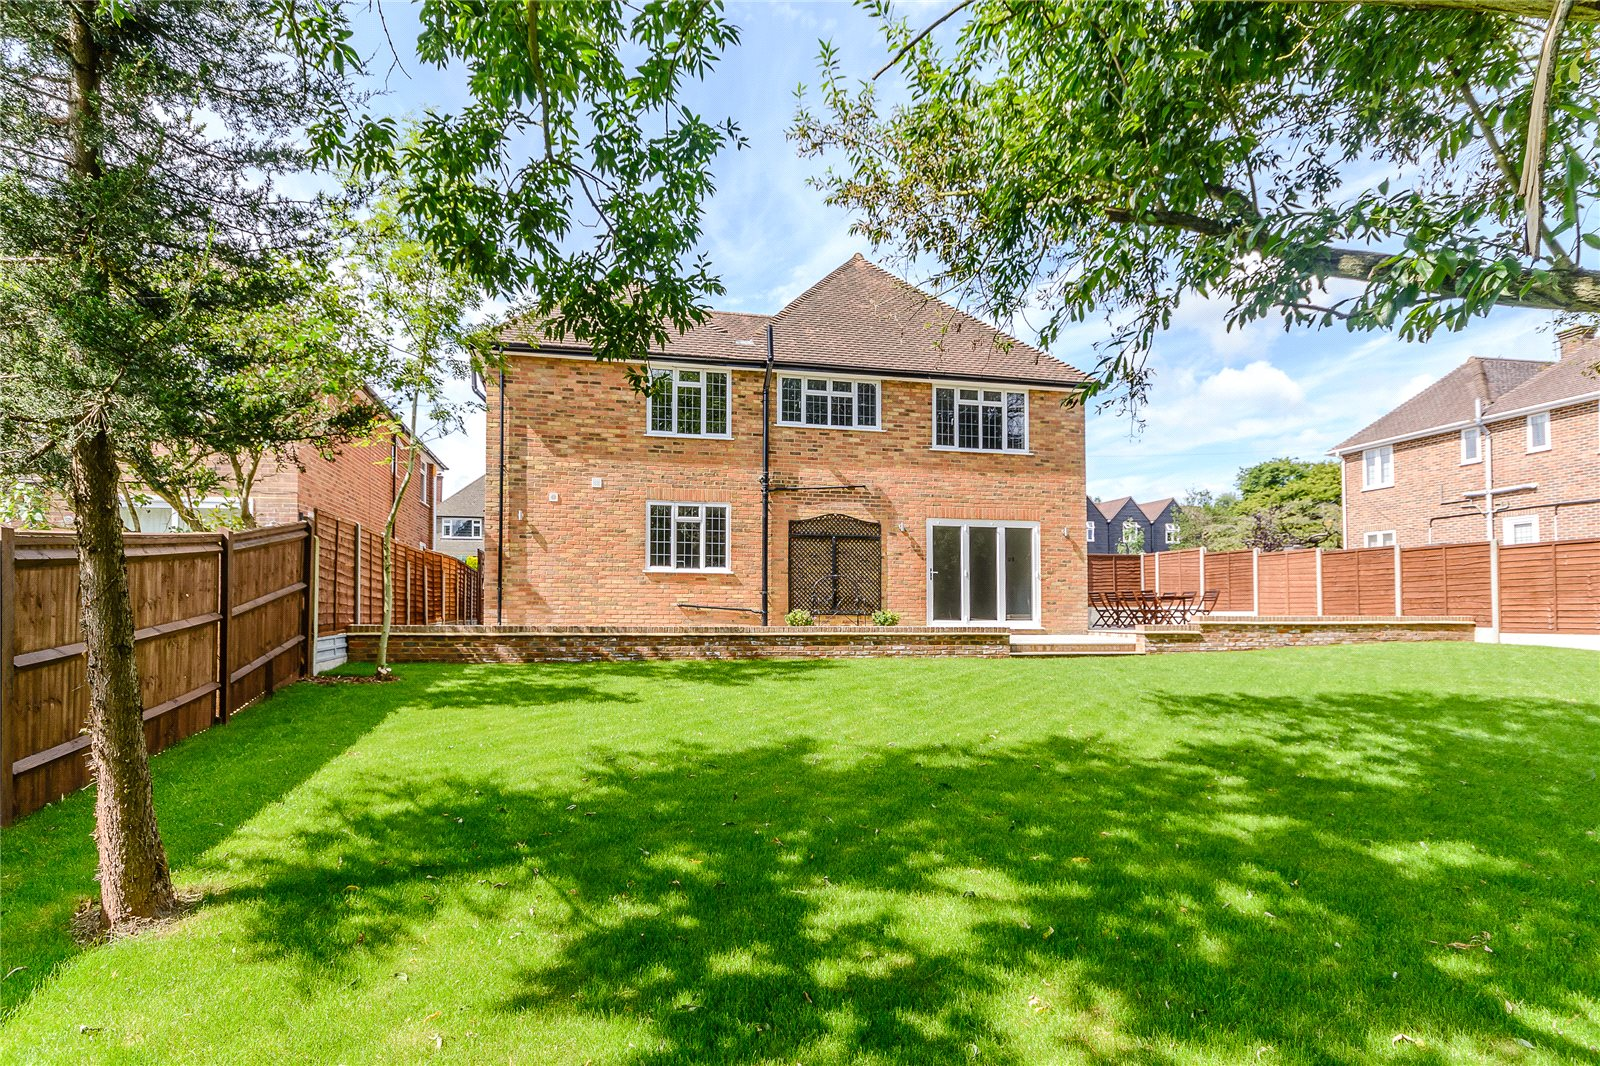 Additional photo for property listing at Moreland Drive, Gerrards Cross, Buckinghamshire, SL9 Gerrards Cross, Αγγλια